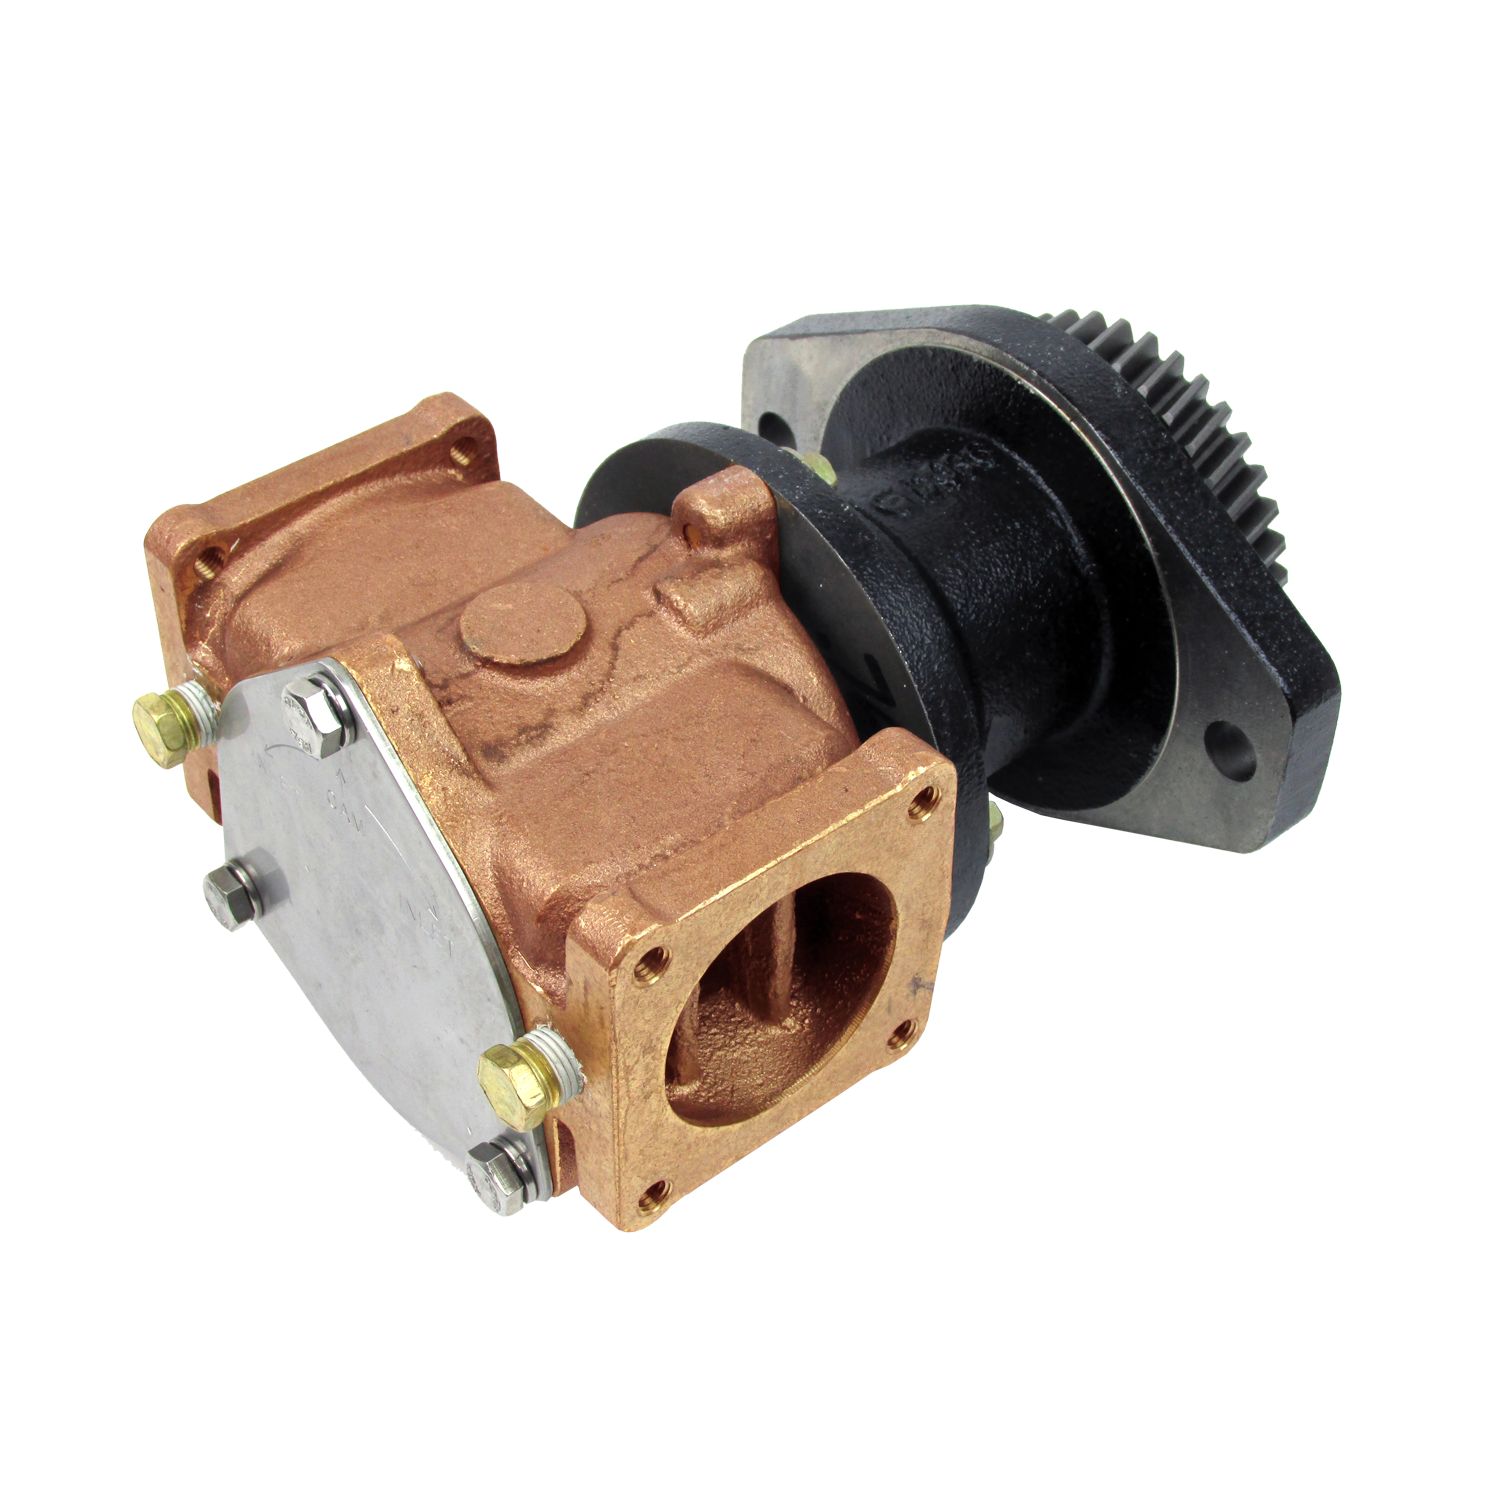 Sherwood G2610 (replacement for G2603) Seawater Pump for Cummins QSC 8 3